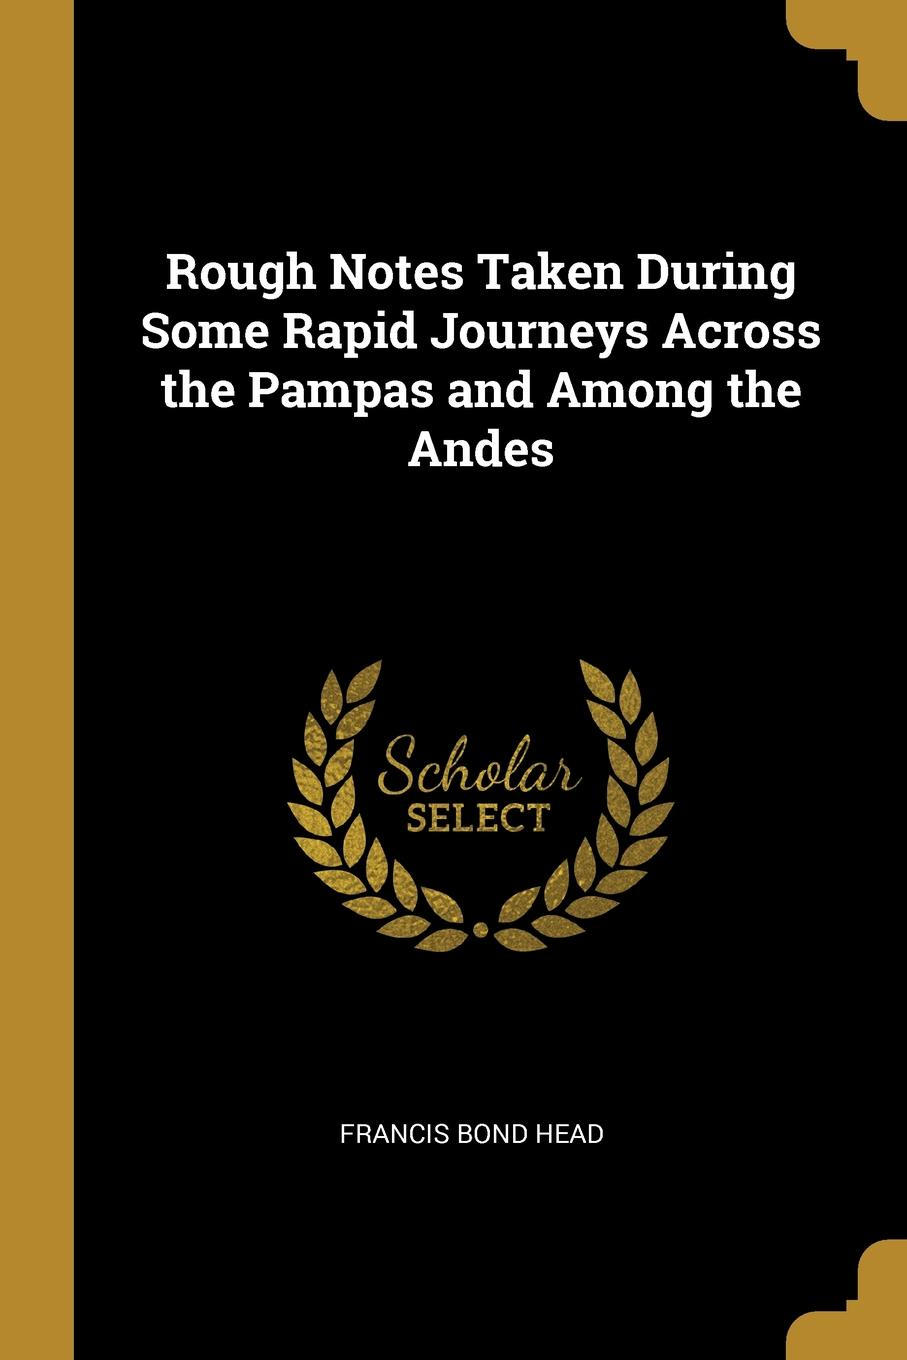 Francis Bond Head Rough Notes Taken During Some Rapid Journeys Across the Pampas and Among the Andes